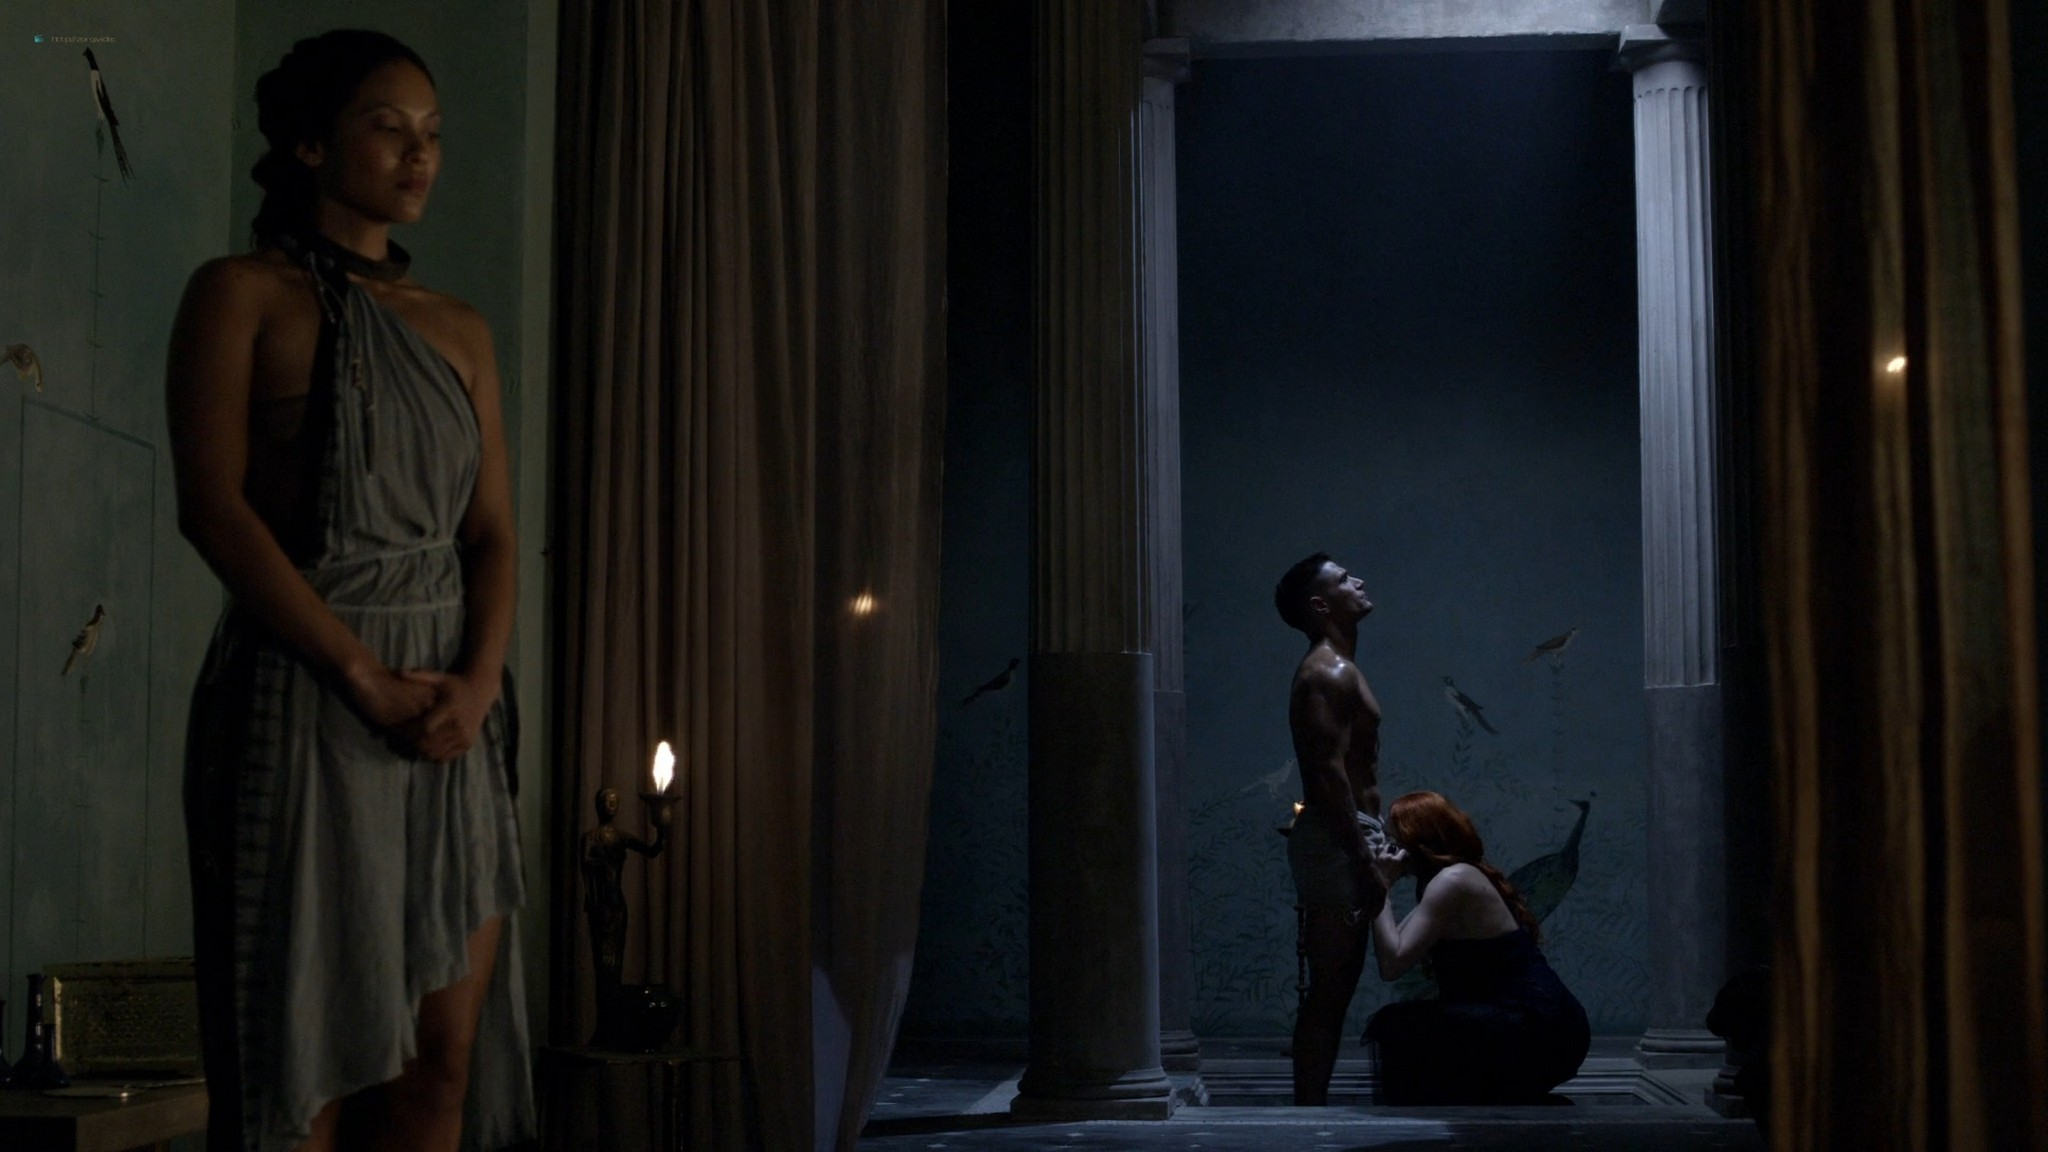 Lucy Lawless hot sex oral Lesley-Ann Brandt and others sexy - Spartacus - The Thing in the Pit (2010) s1e4-5 HD 1080p (5)